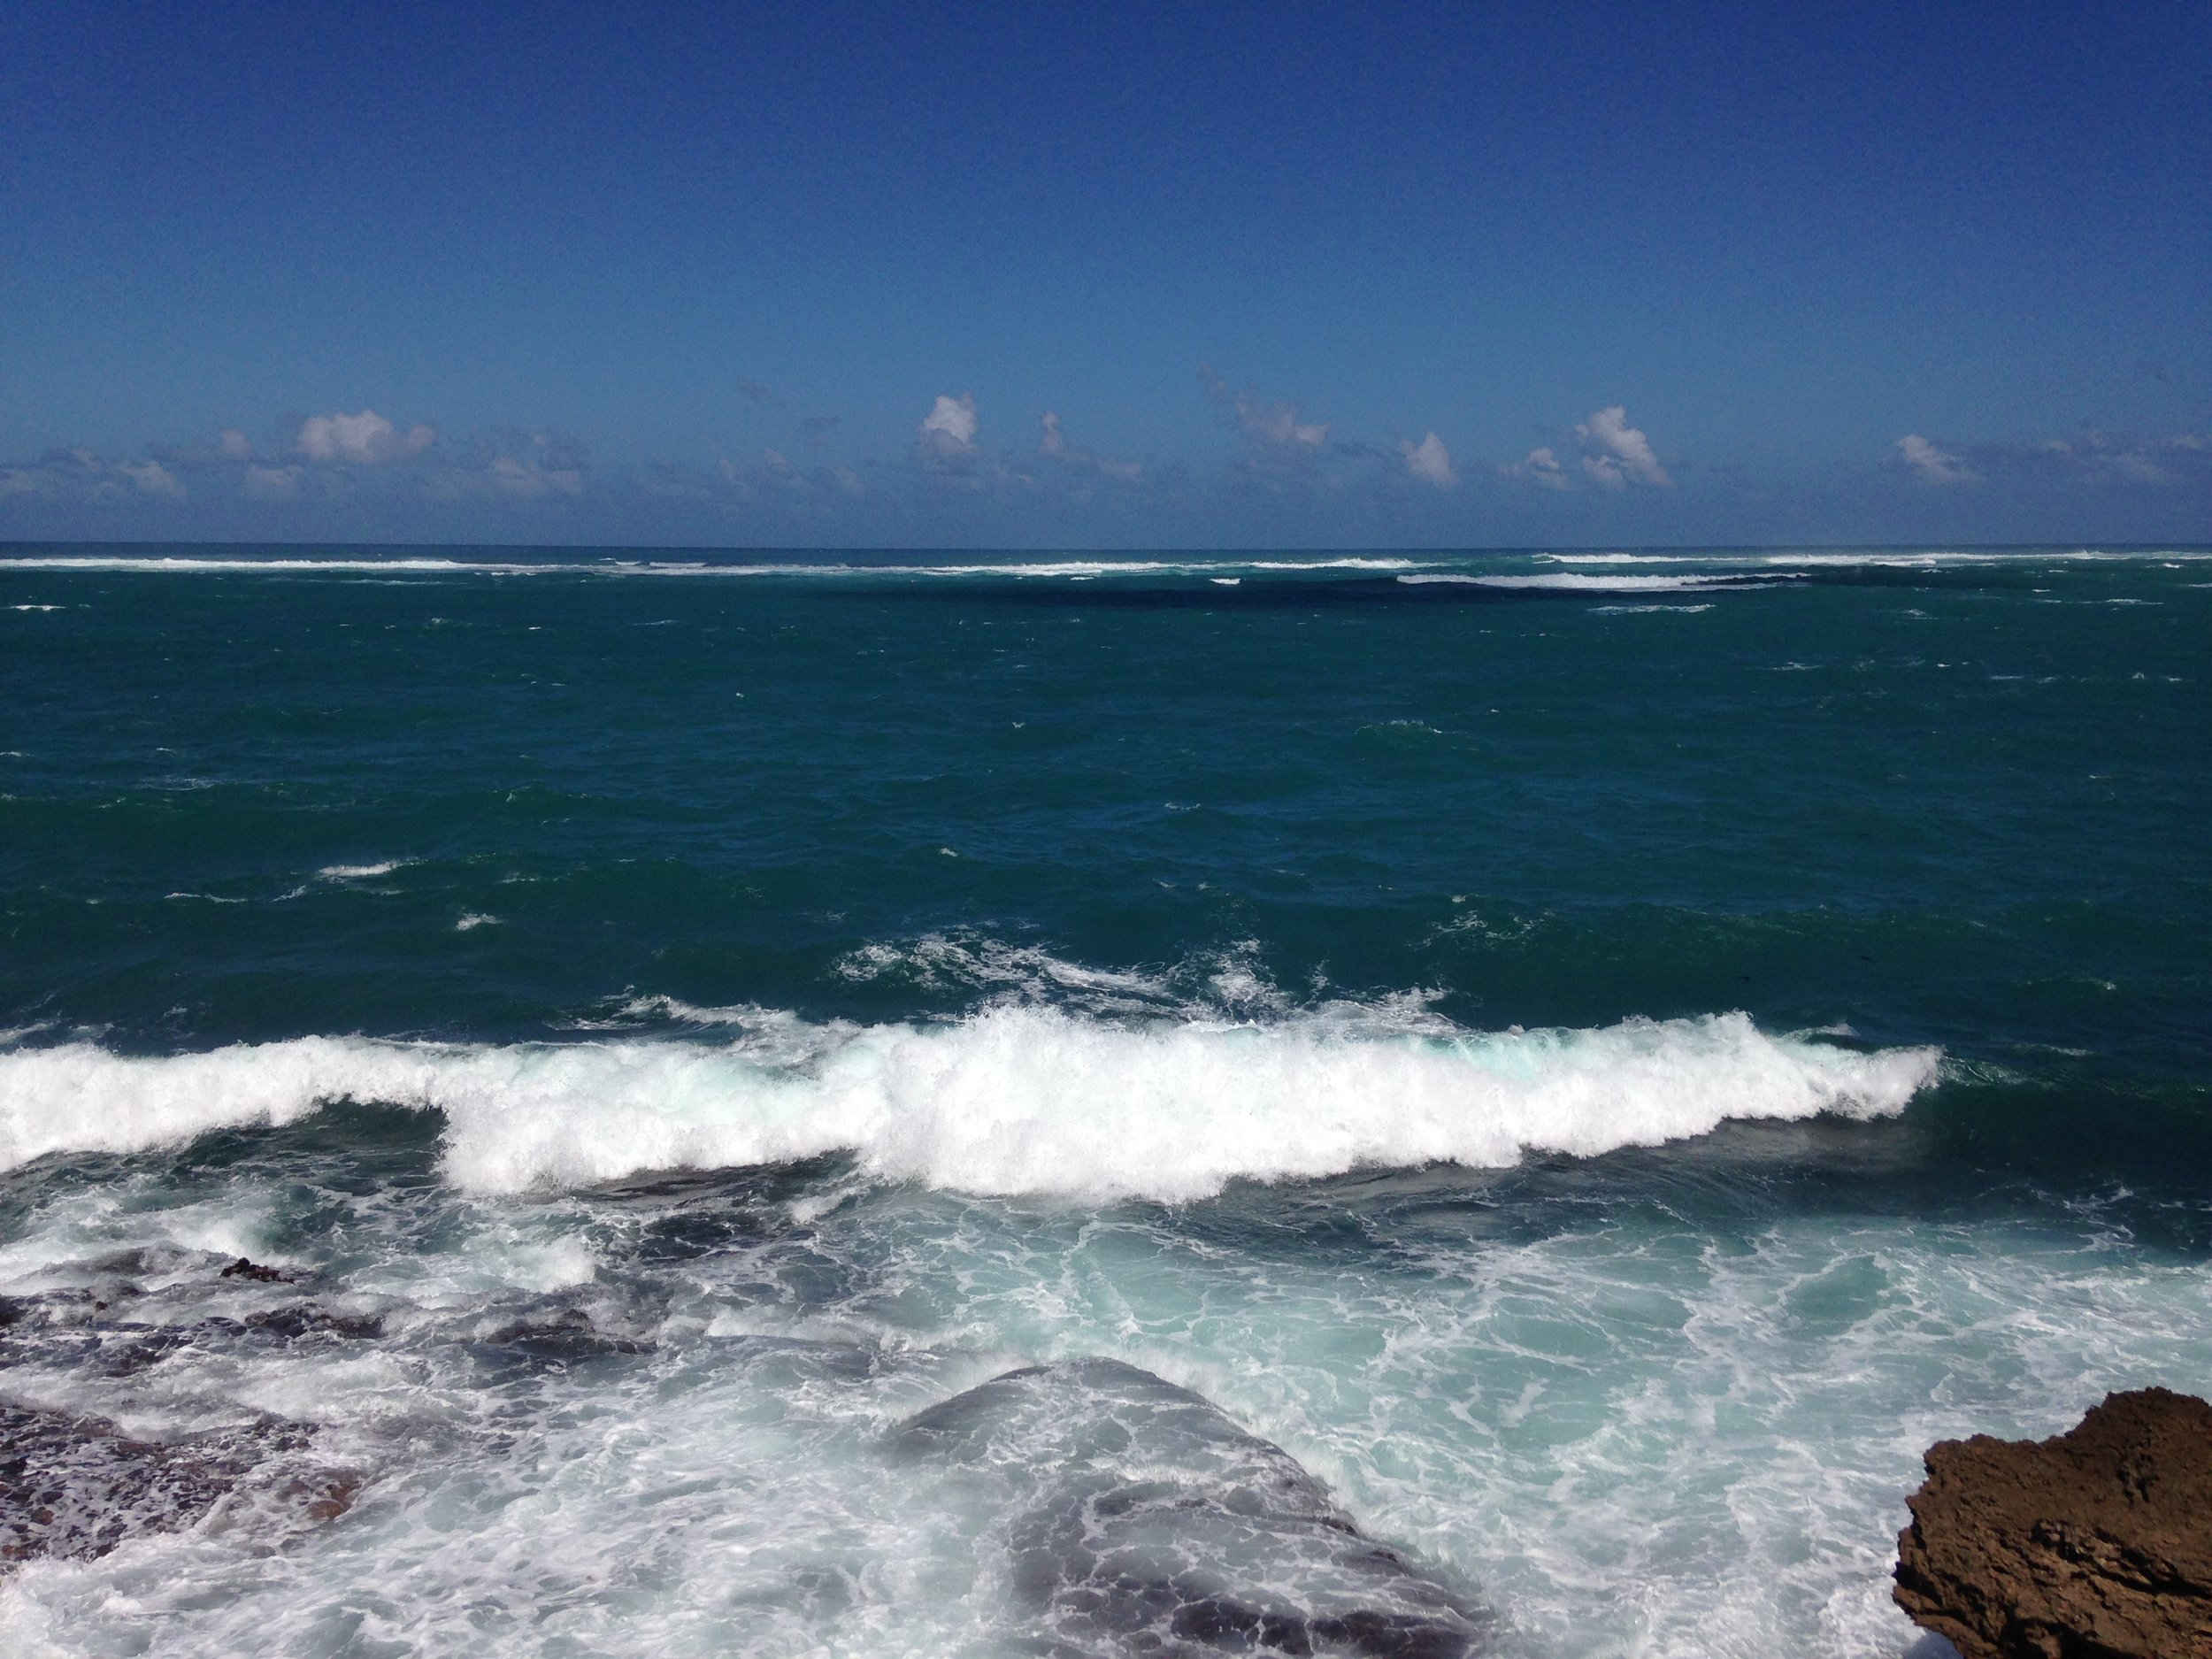 View from the infinity pool at the Condado Vanderbilt hotel